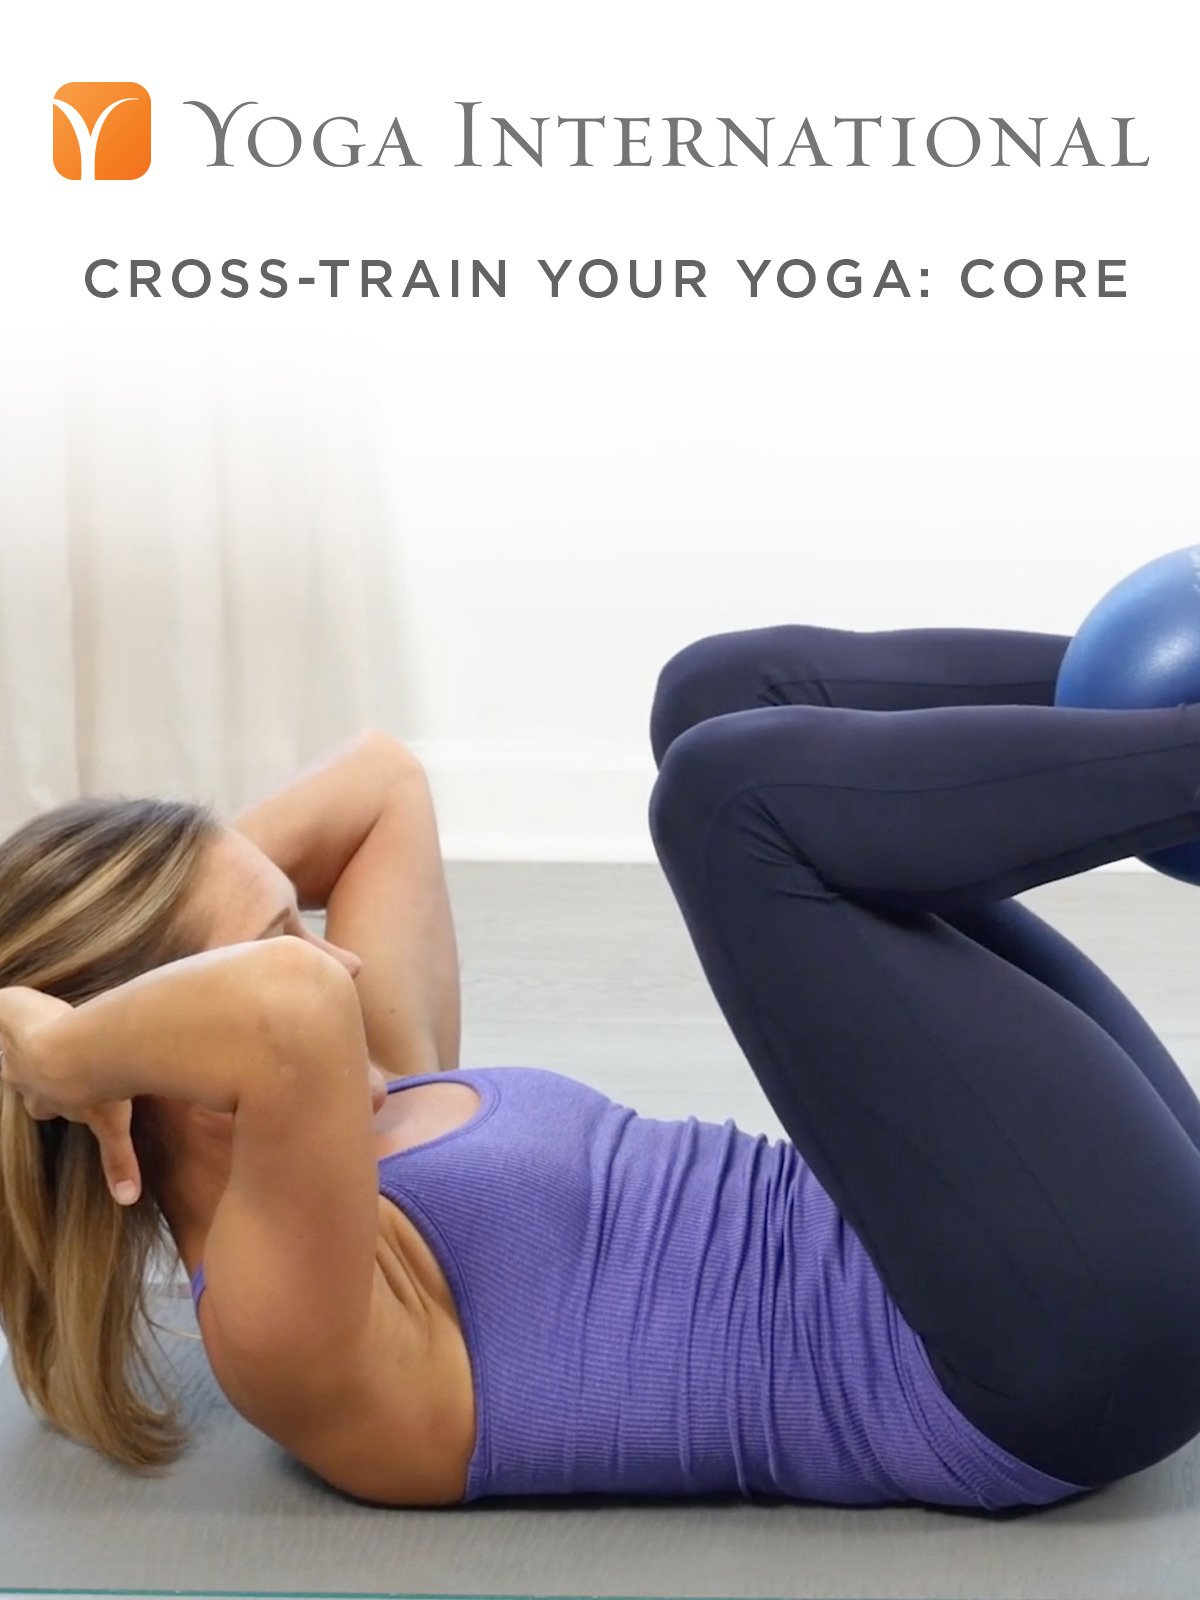 Cross-Train Your Yoga: Core